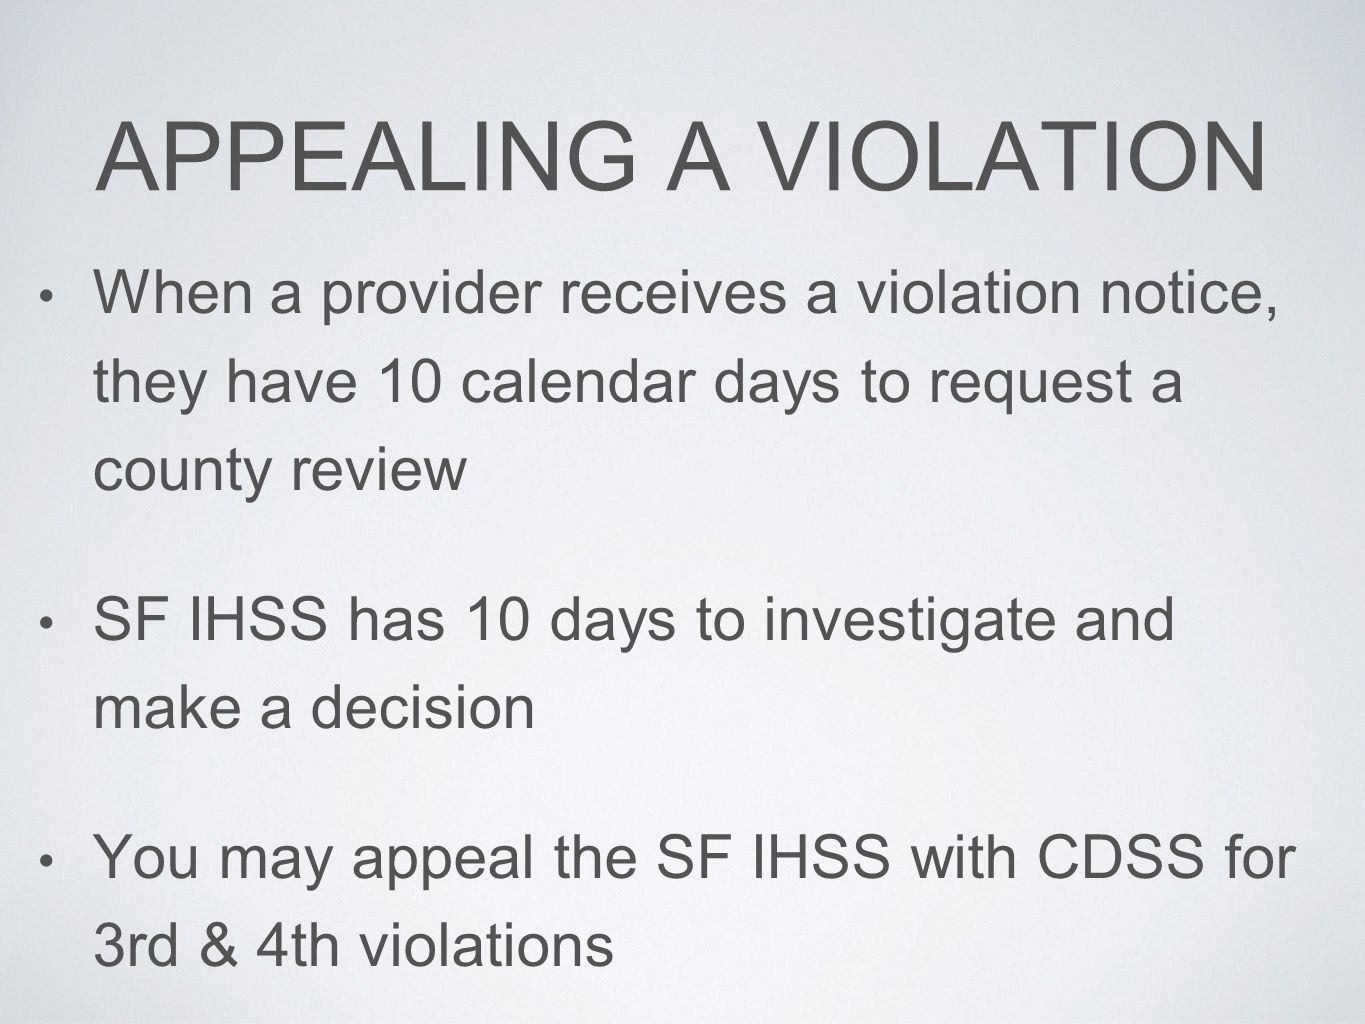 APPEALING A VIOLATION When a provider receives a violation notice, they have 10 calendar days to request a county review.